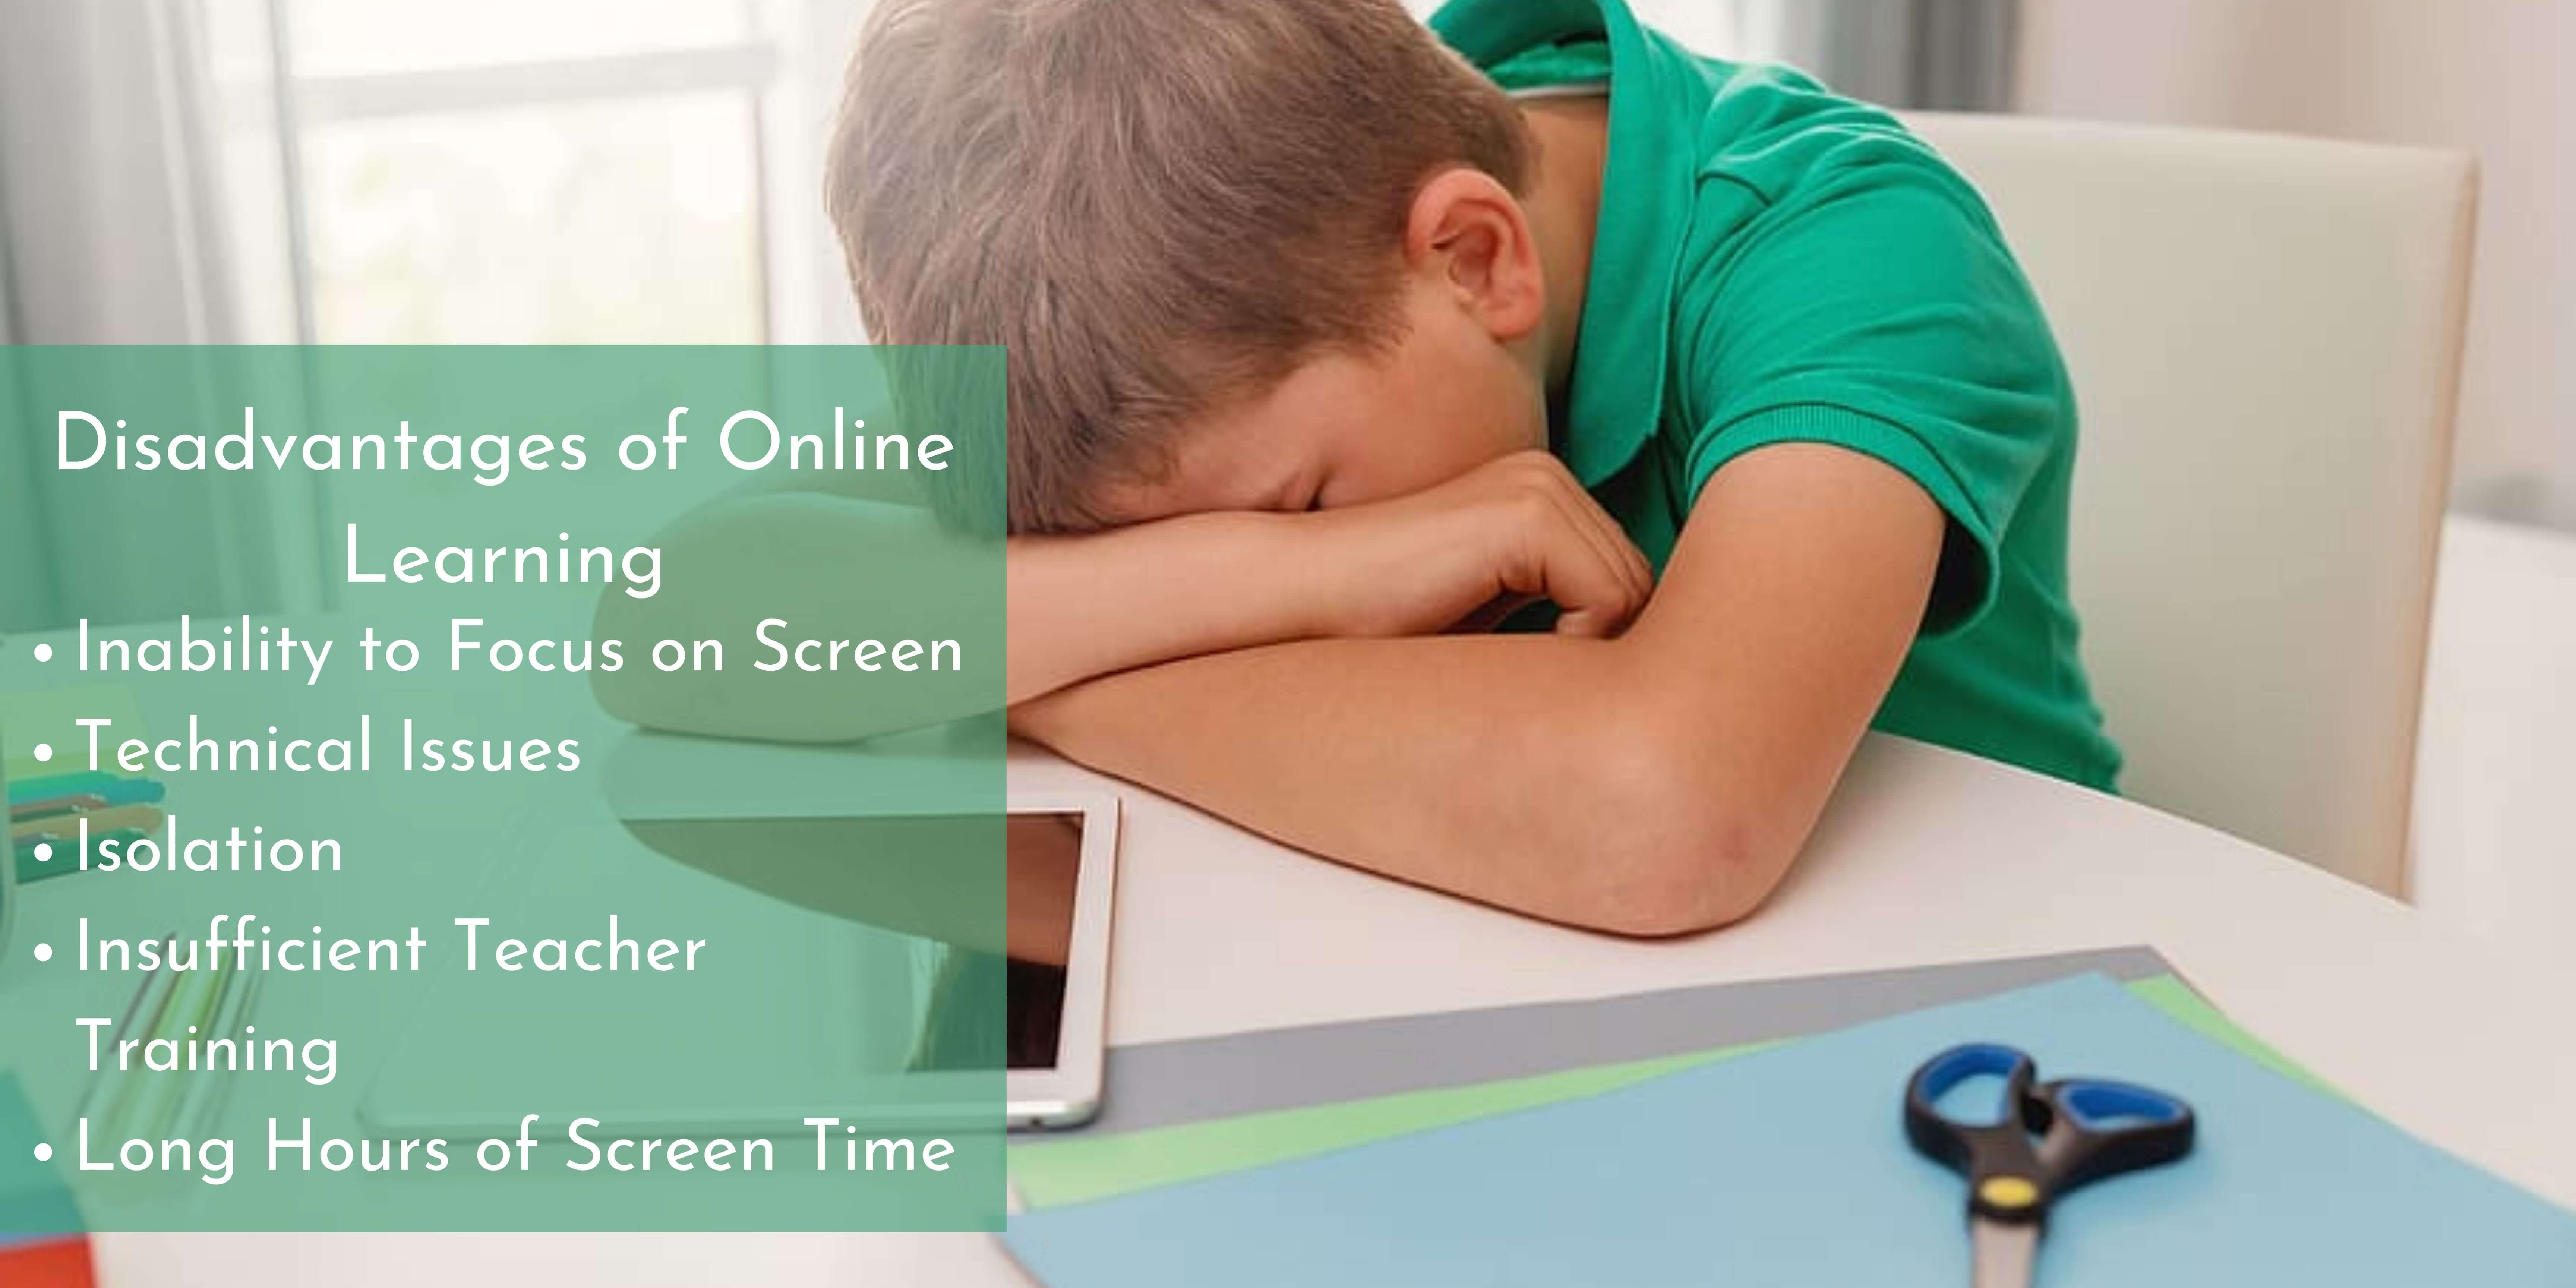 Disadvantages of Online Learning banner, listing out the points